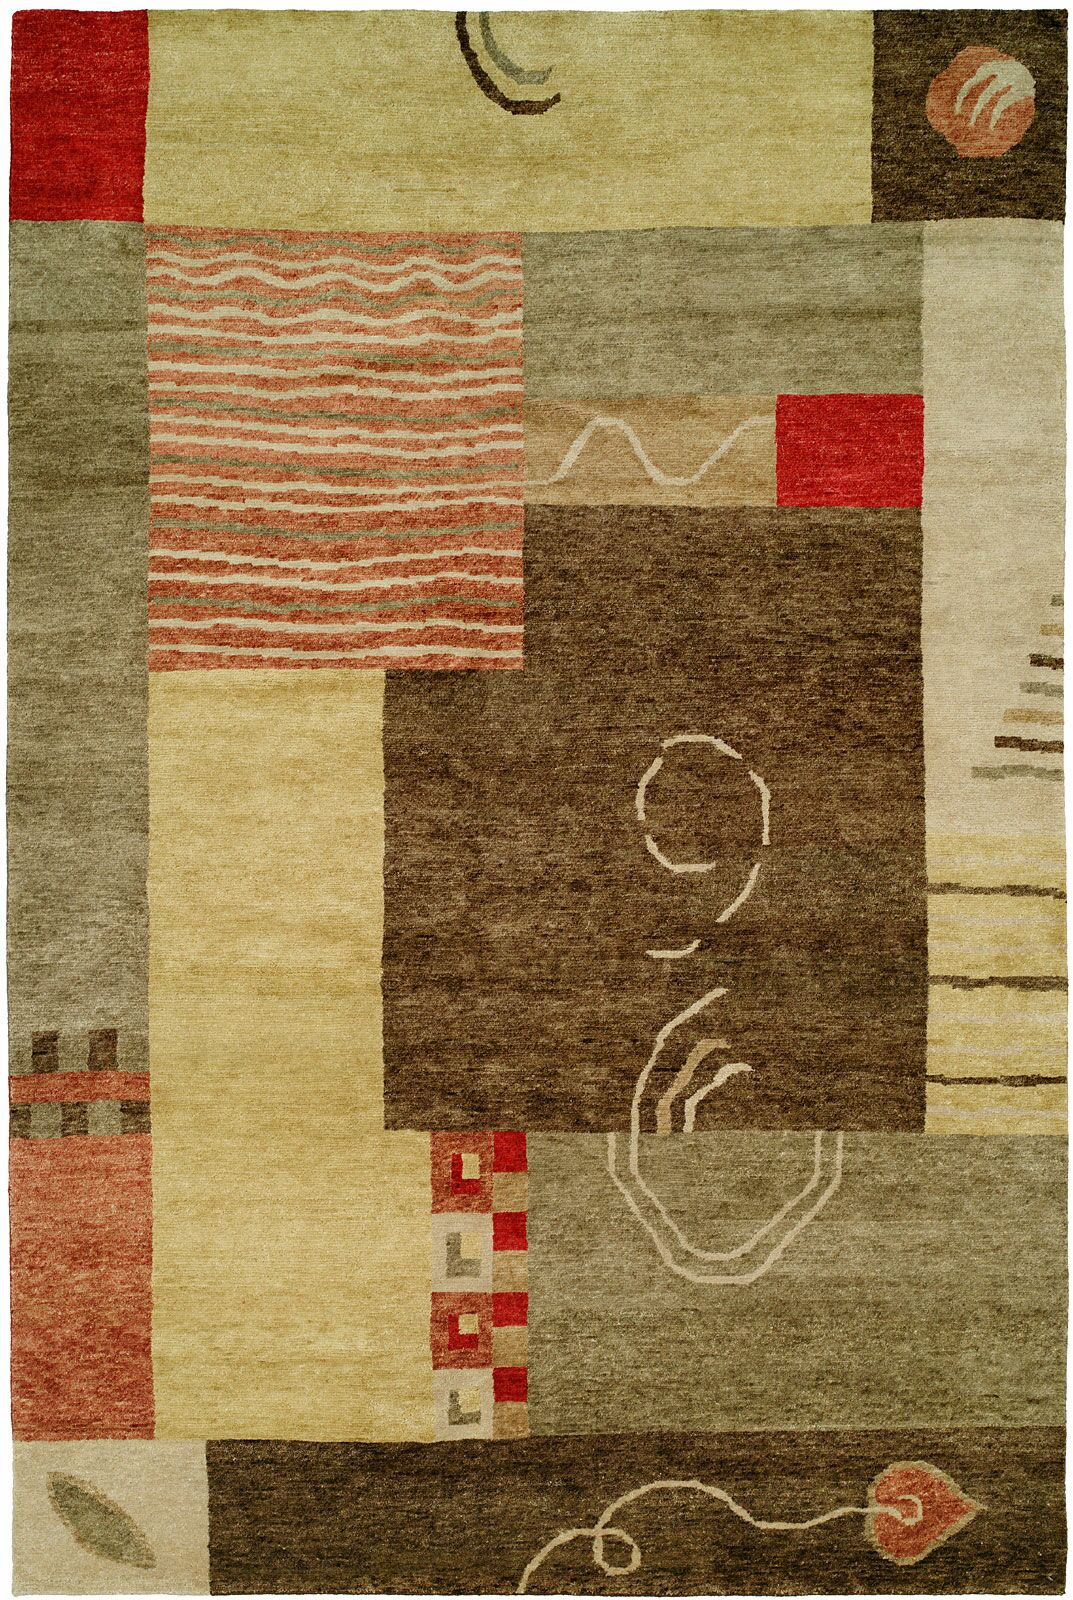 Lushunkou Hand-Knotted Ivory/Brown Area Rug Rug Size: 10' x 14'